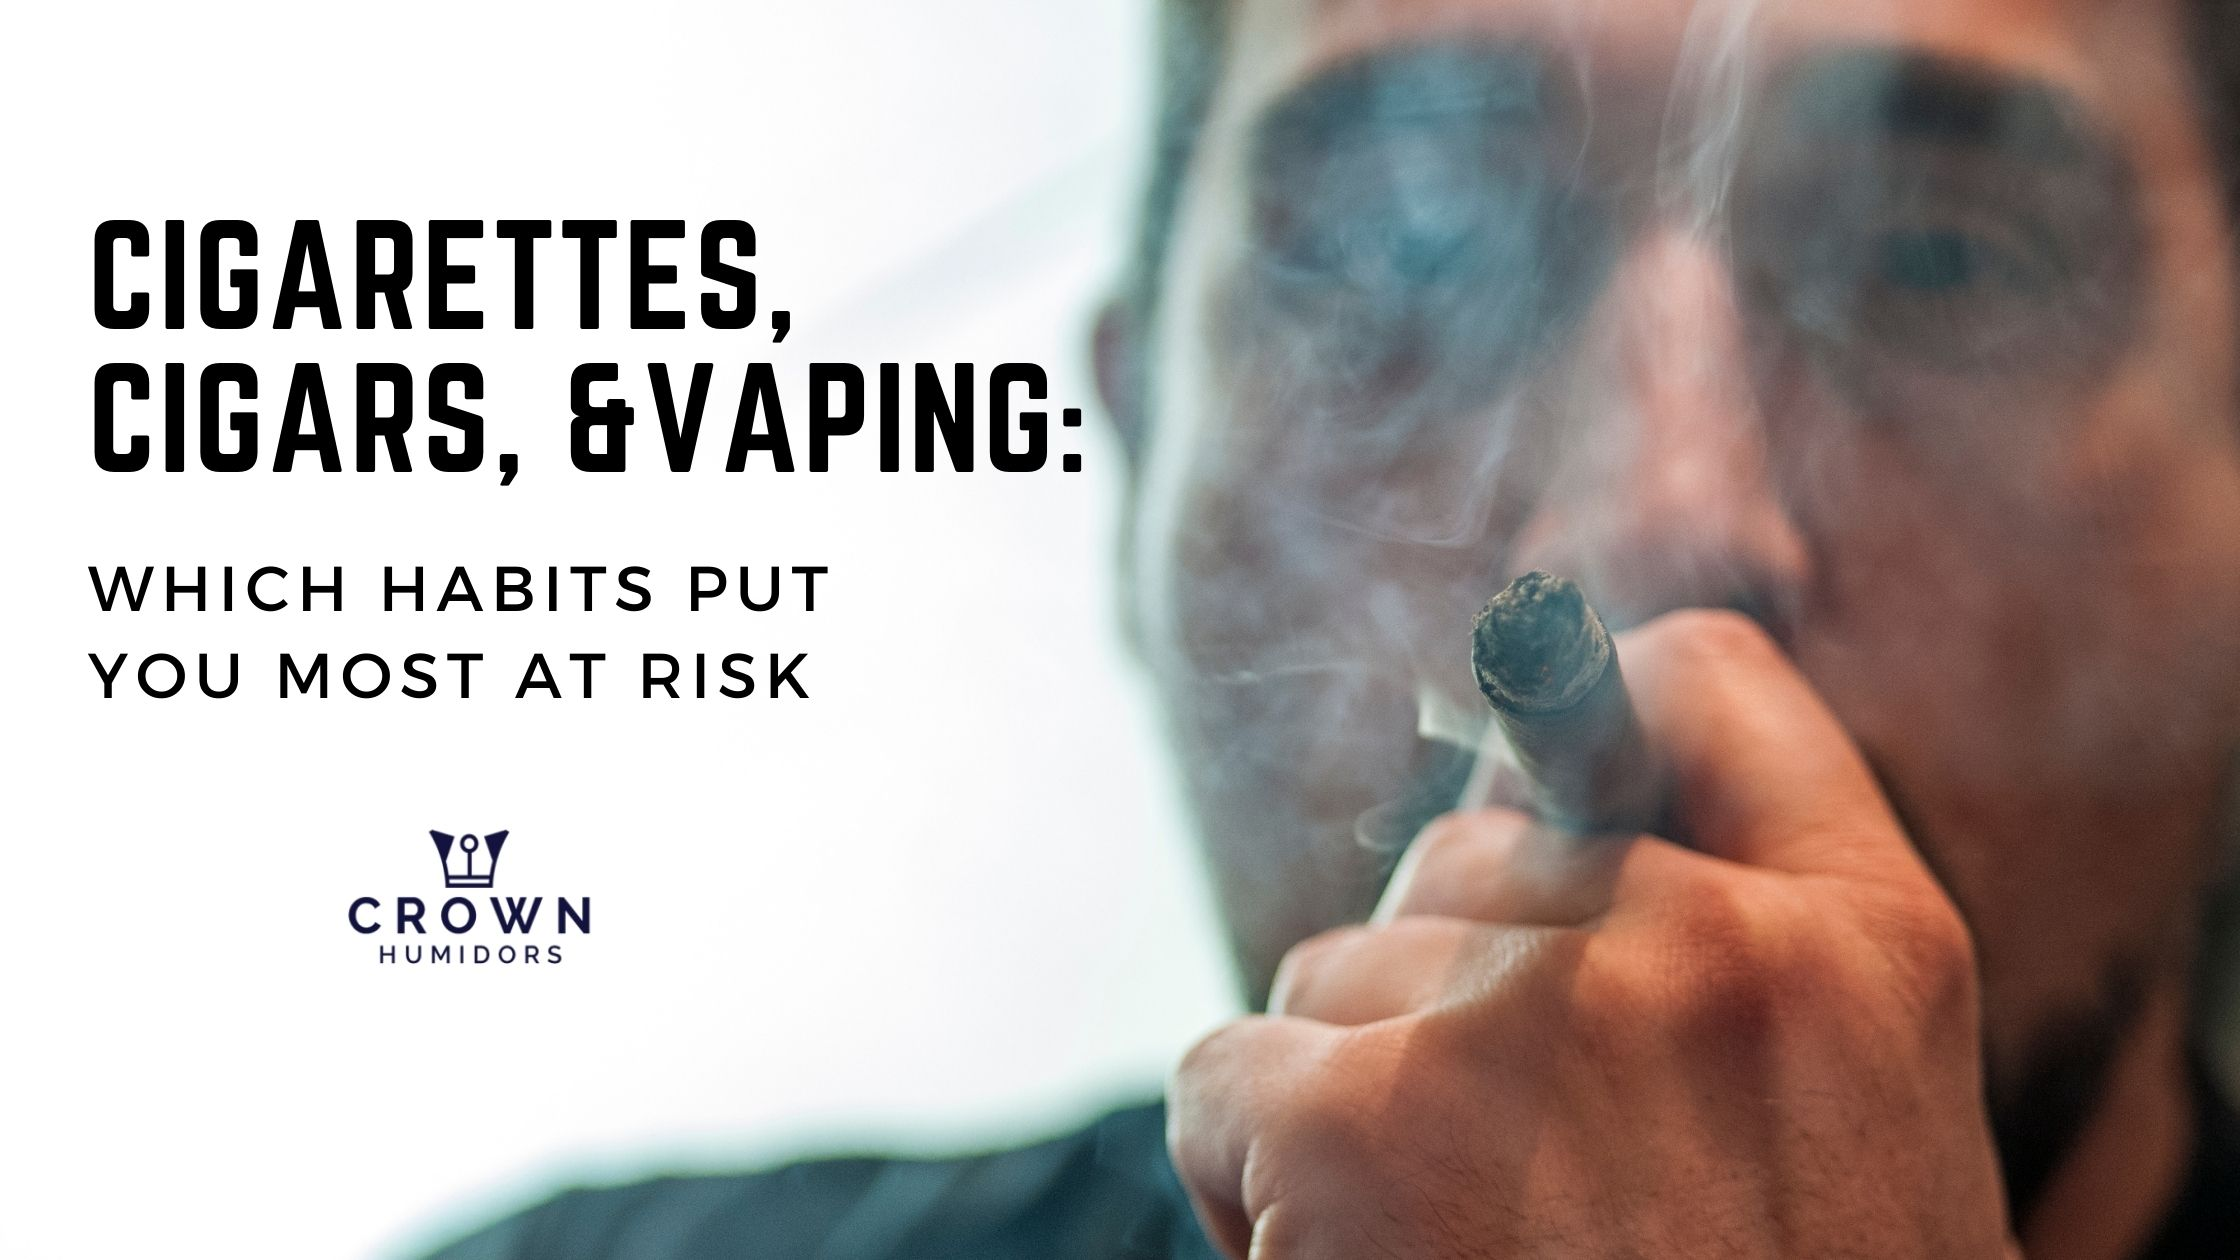 CIGARETTES, CIGARS &, VAPING: WHICH HABITS PUT YOU MOST AT RISK